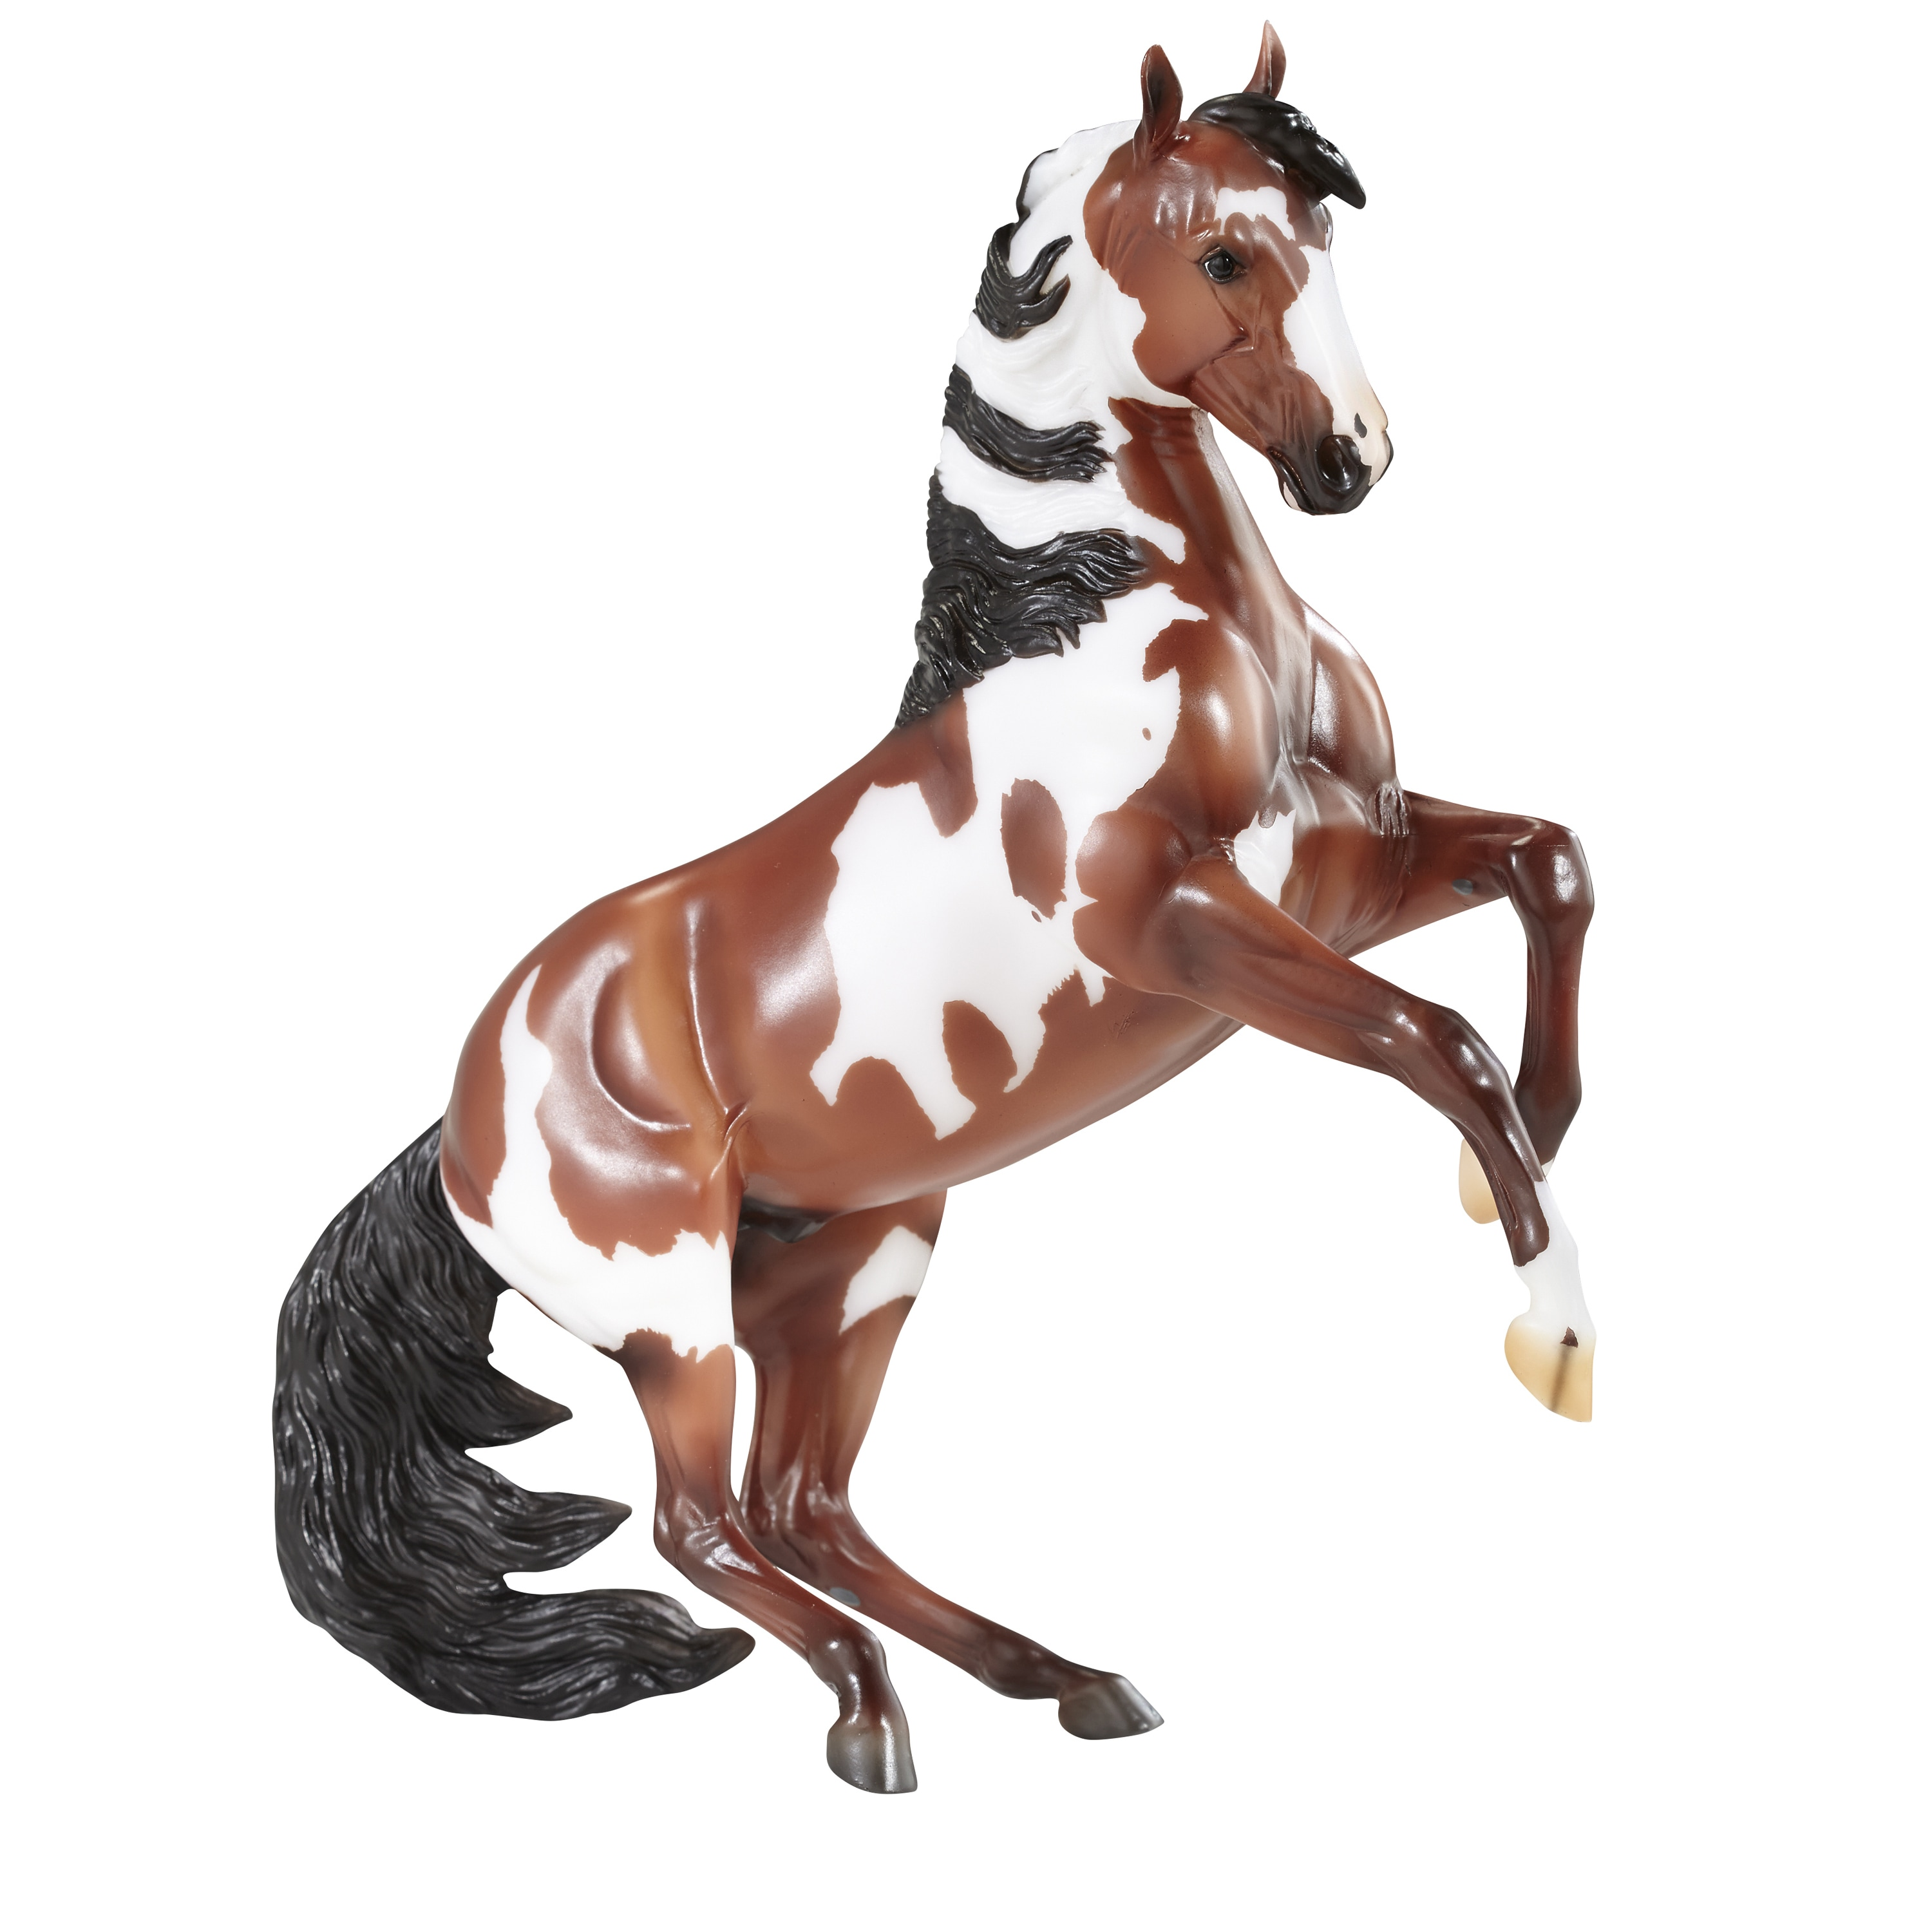 Breyer Traditional Series Picasso Mustang Horse Overstock 10613050